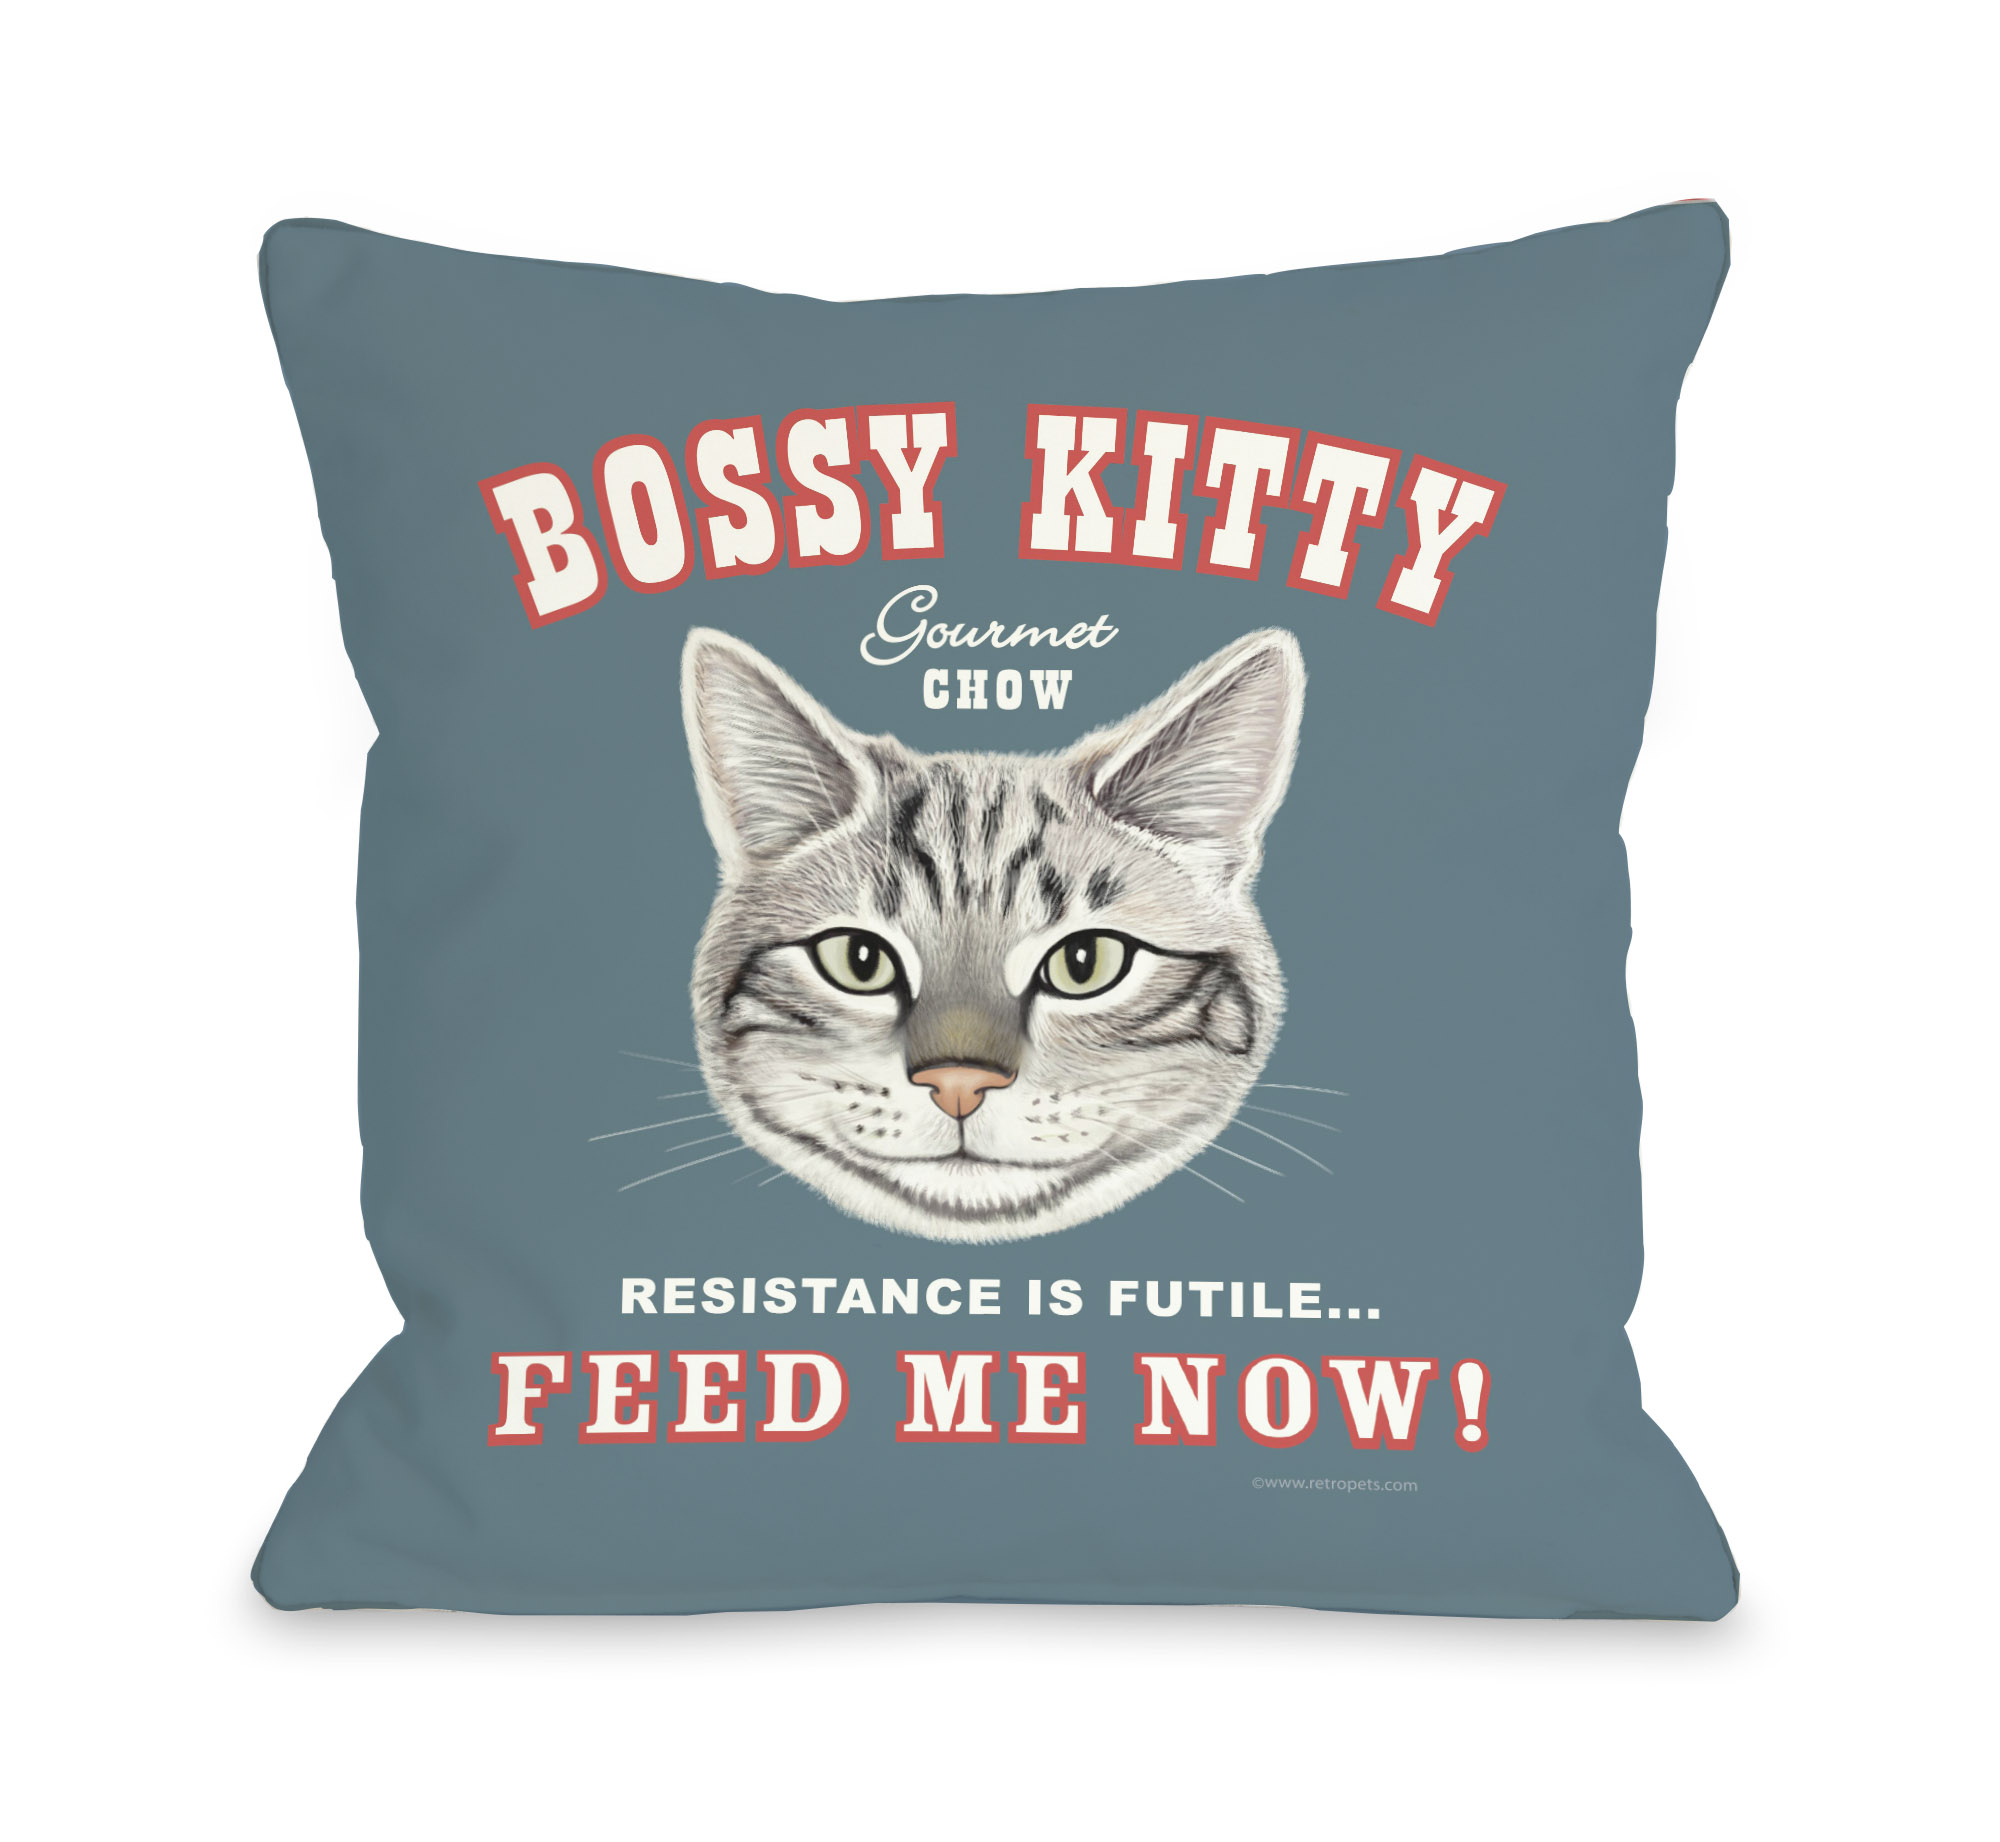 Bossy Kitty 16x16 Pillow by Retro Pets